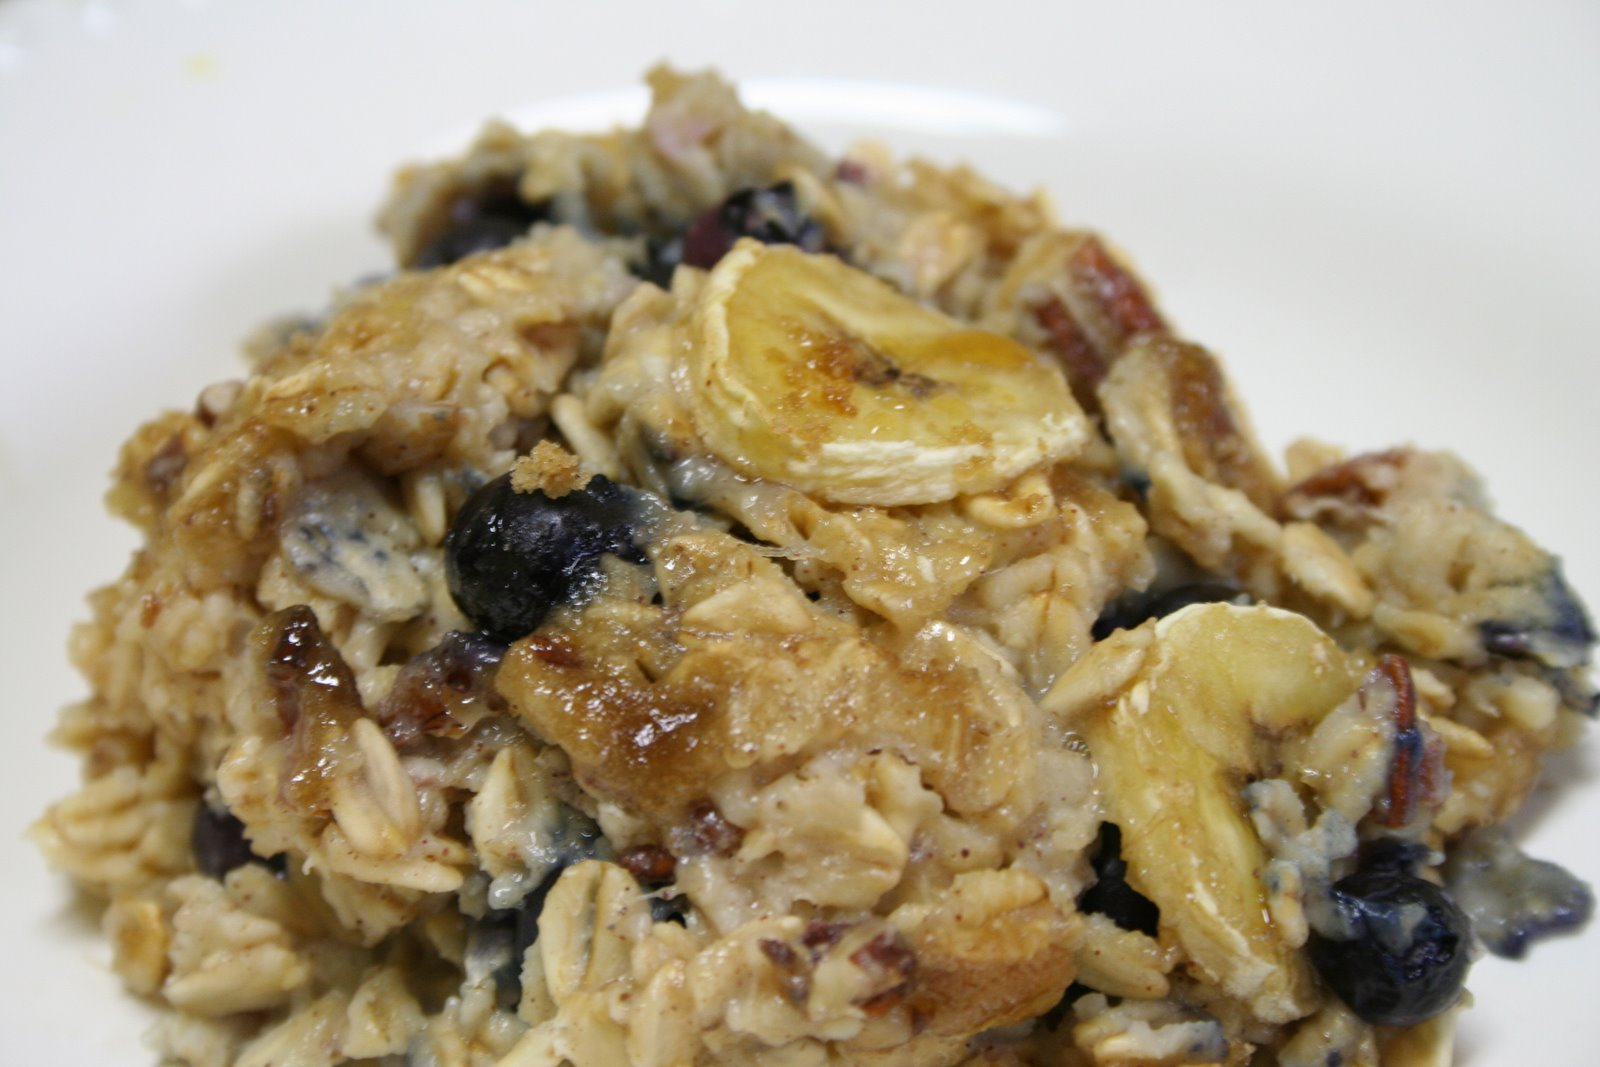 Baked Banana Oatmeal